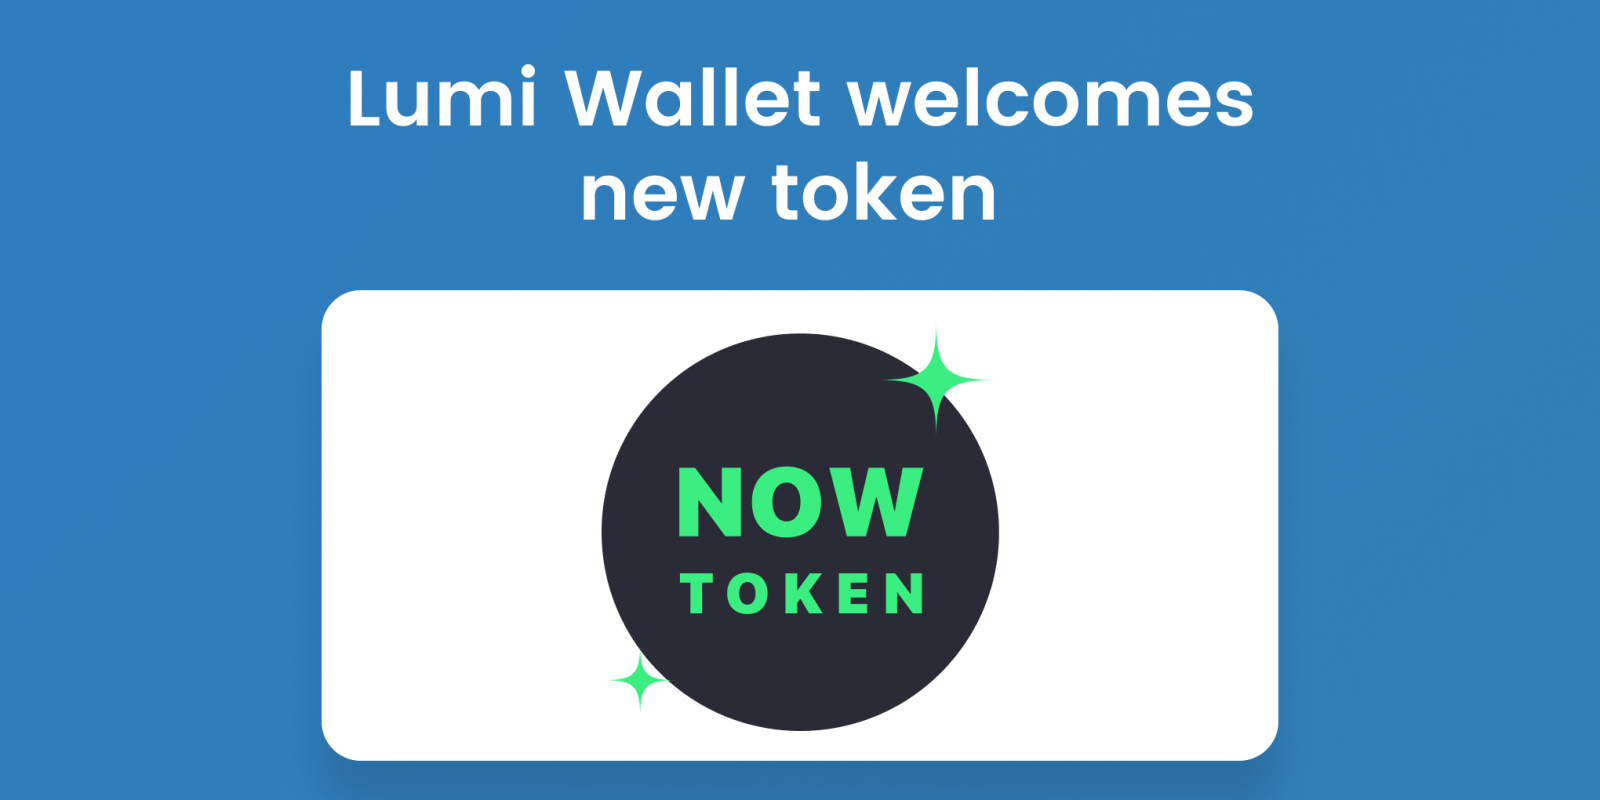 ChangeNOW and Lumi Wallet